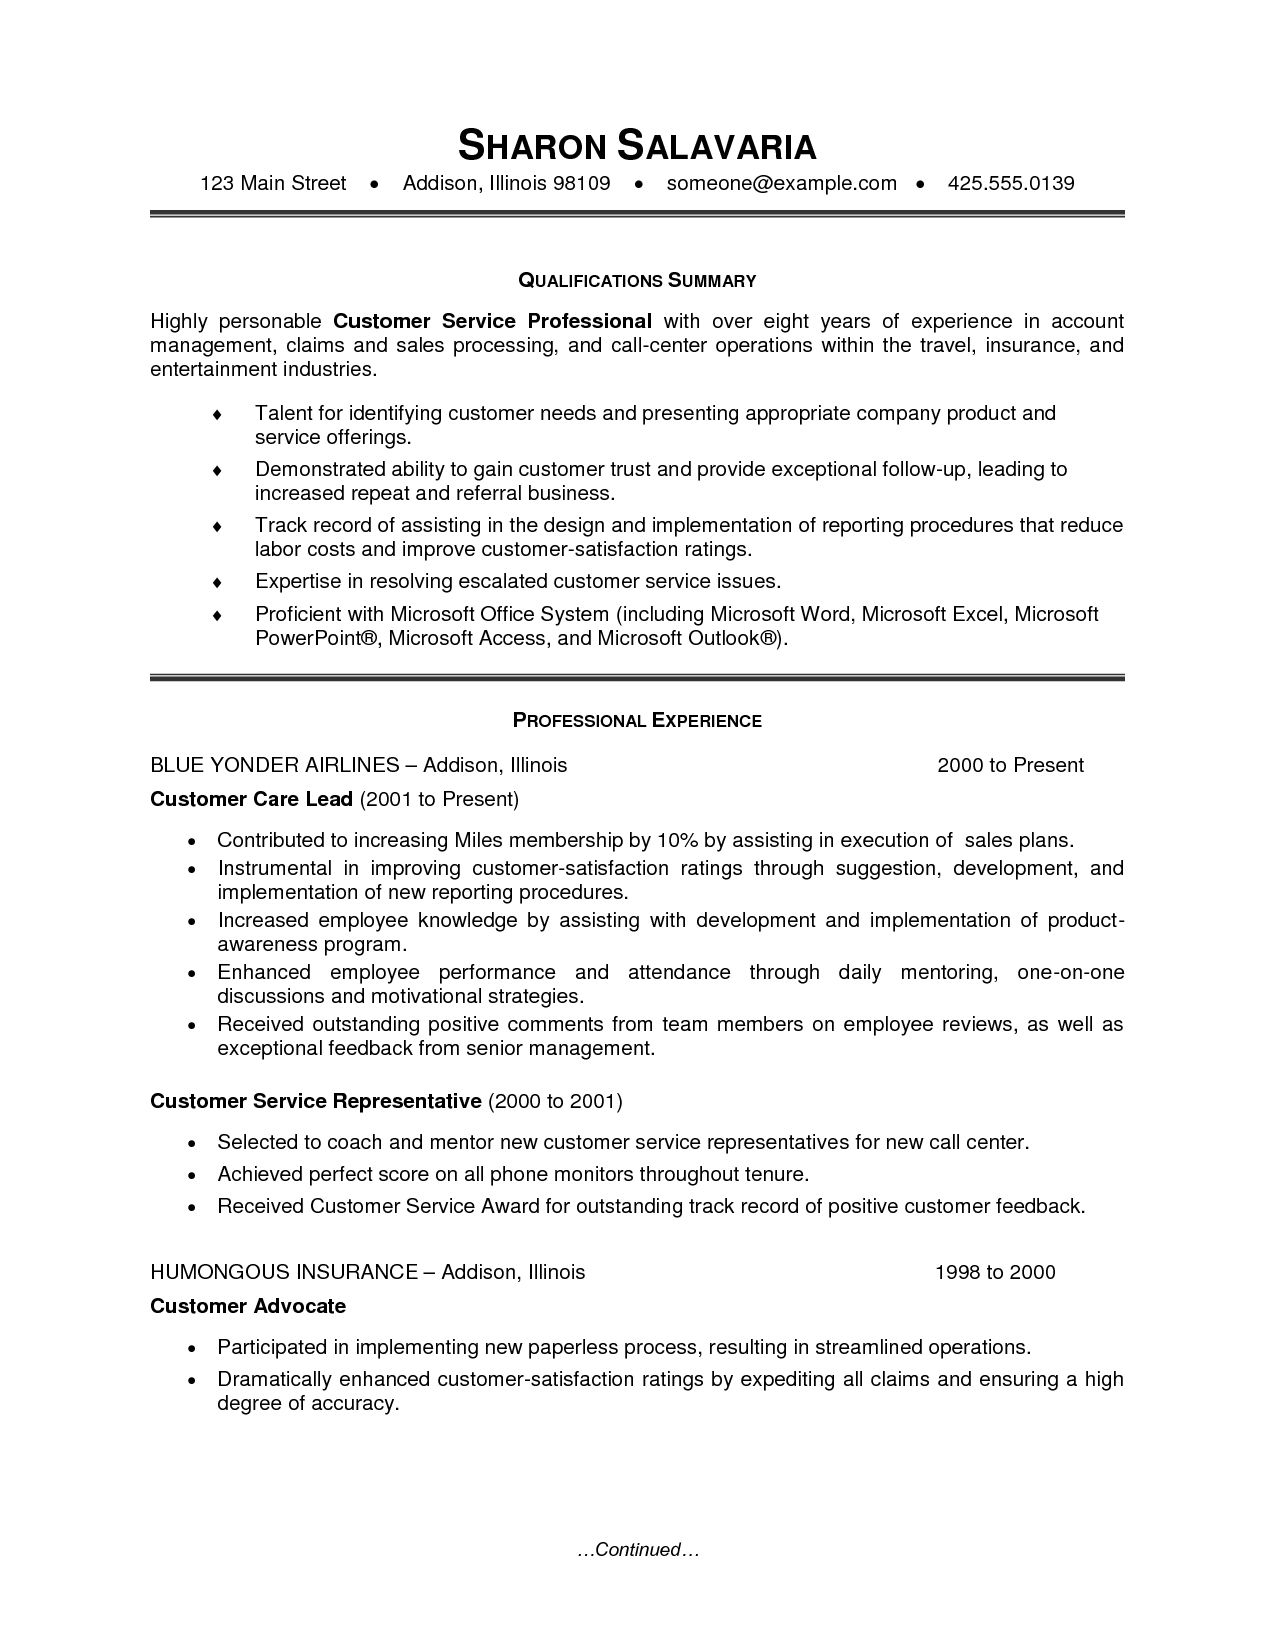 Example Resume Summary How To Write An Executive Summary For A Research Paperlearn How